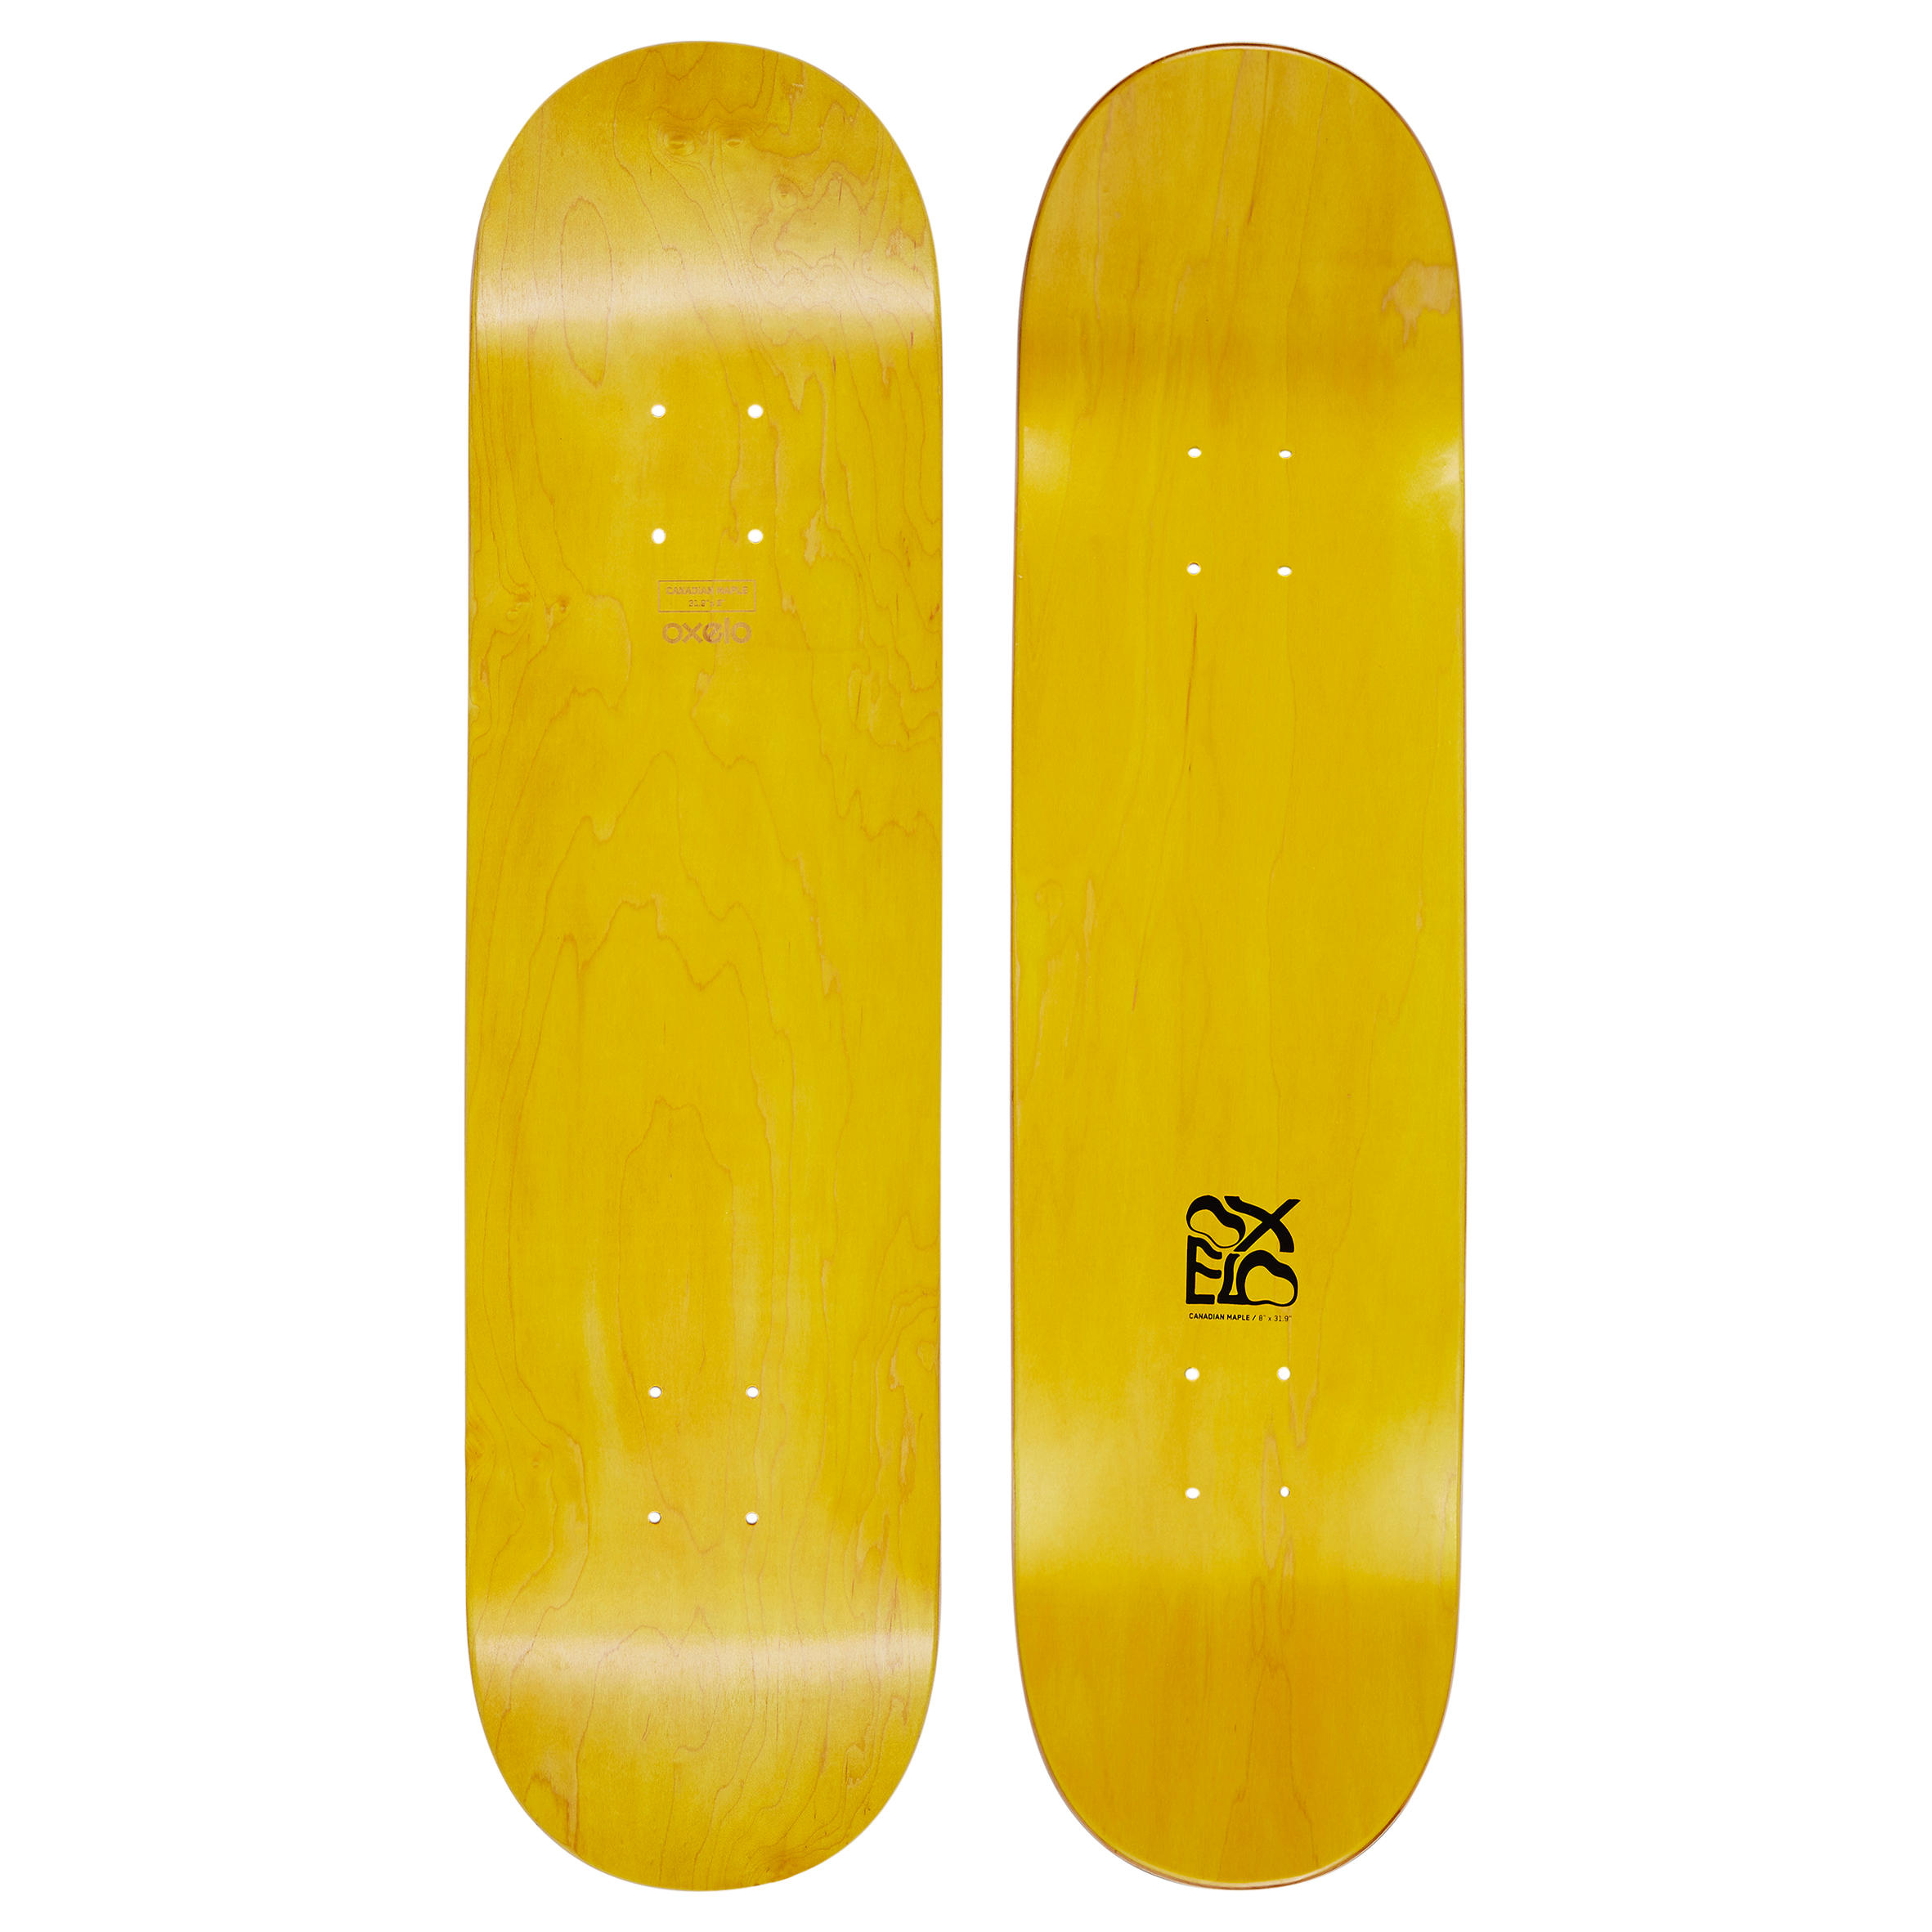 Team Nude 8 Skateboard Deck - Yellow""